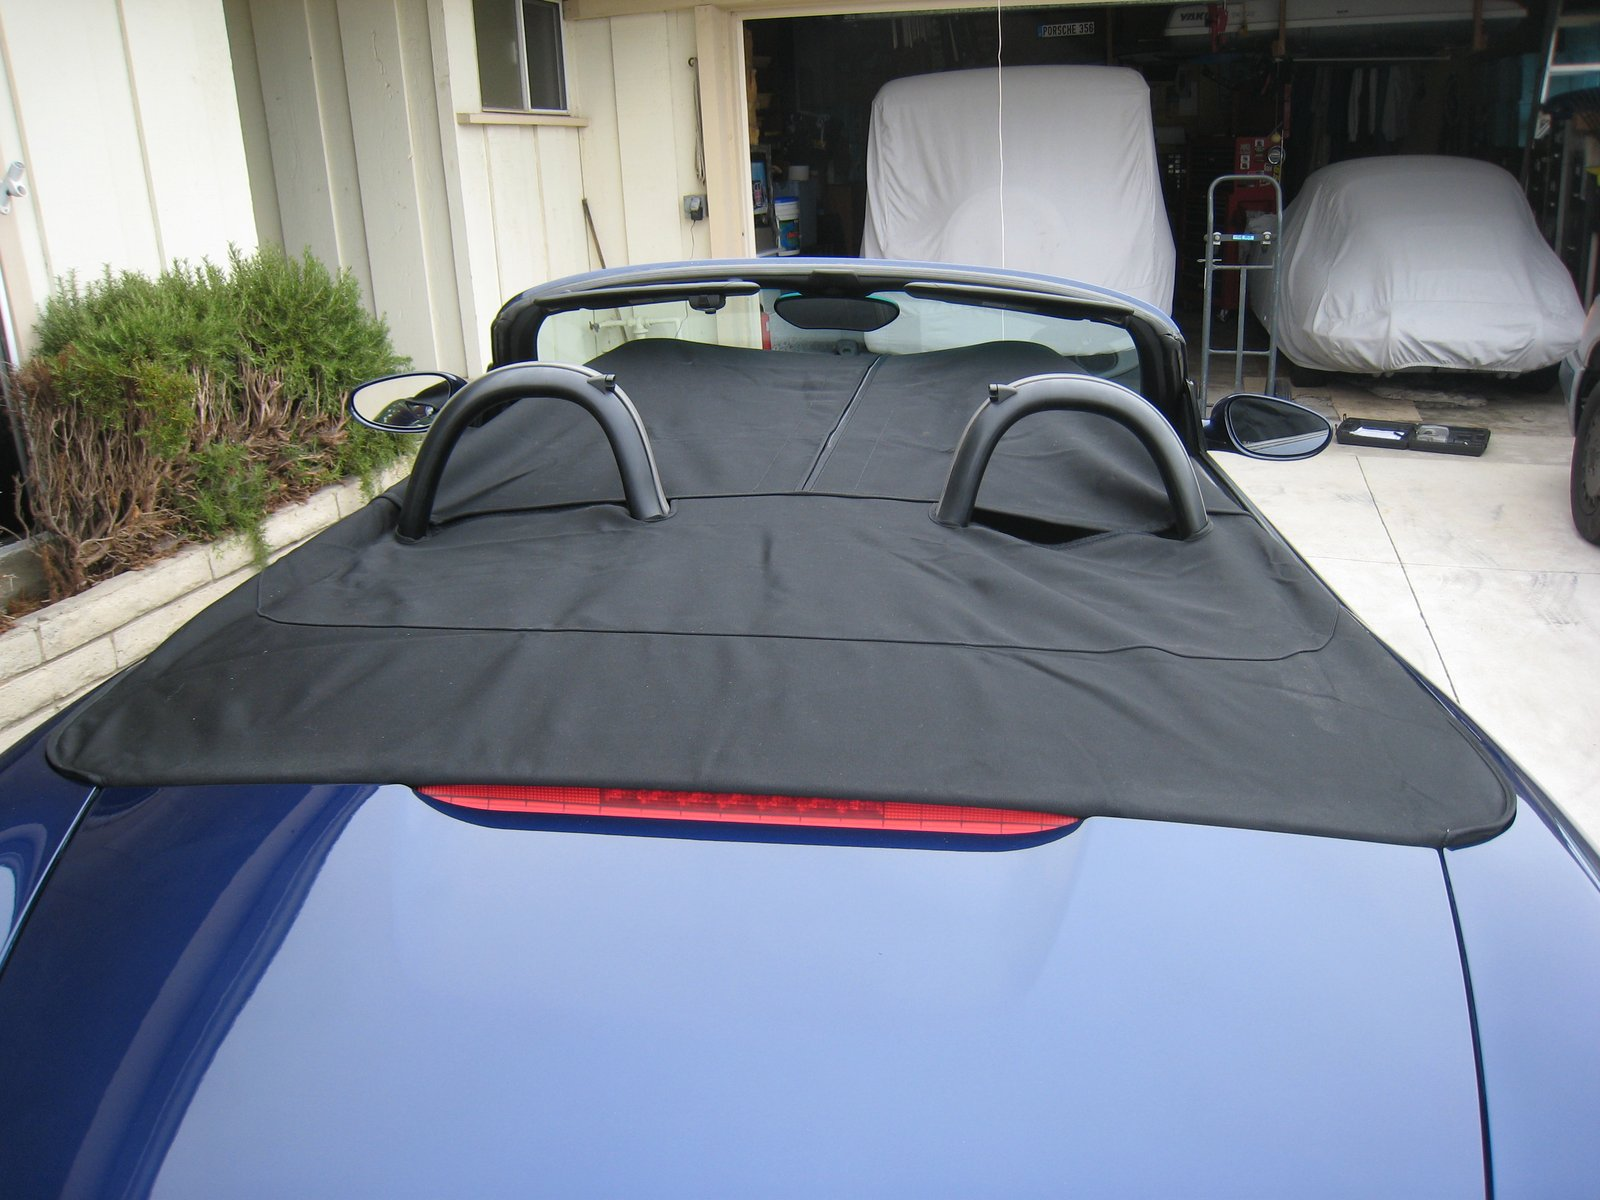 Fs Nearly New Tonneau Cover 986 Forum For Porsche Boxster Cayman Owners